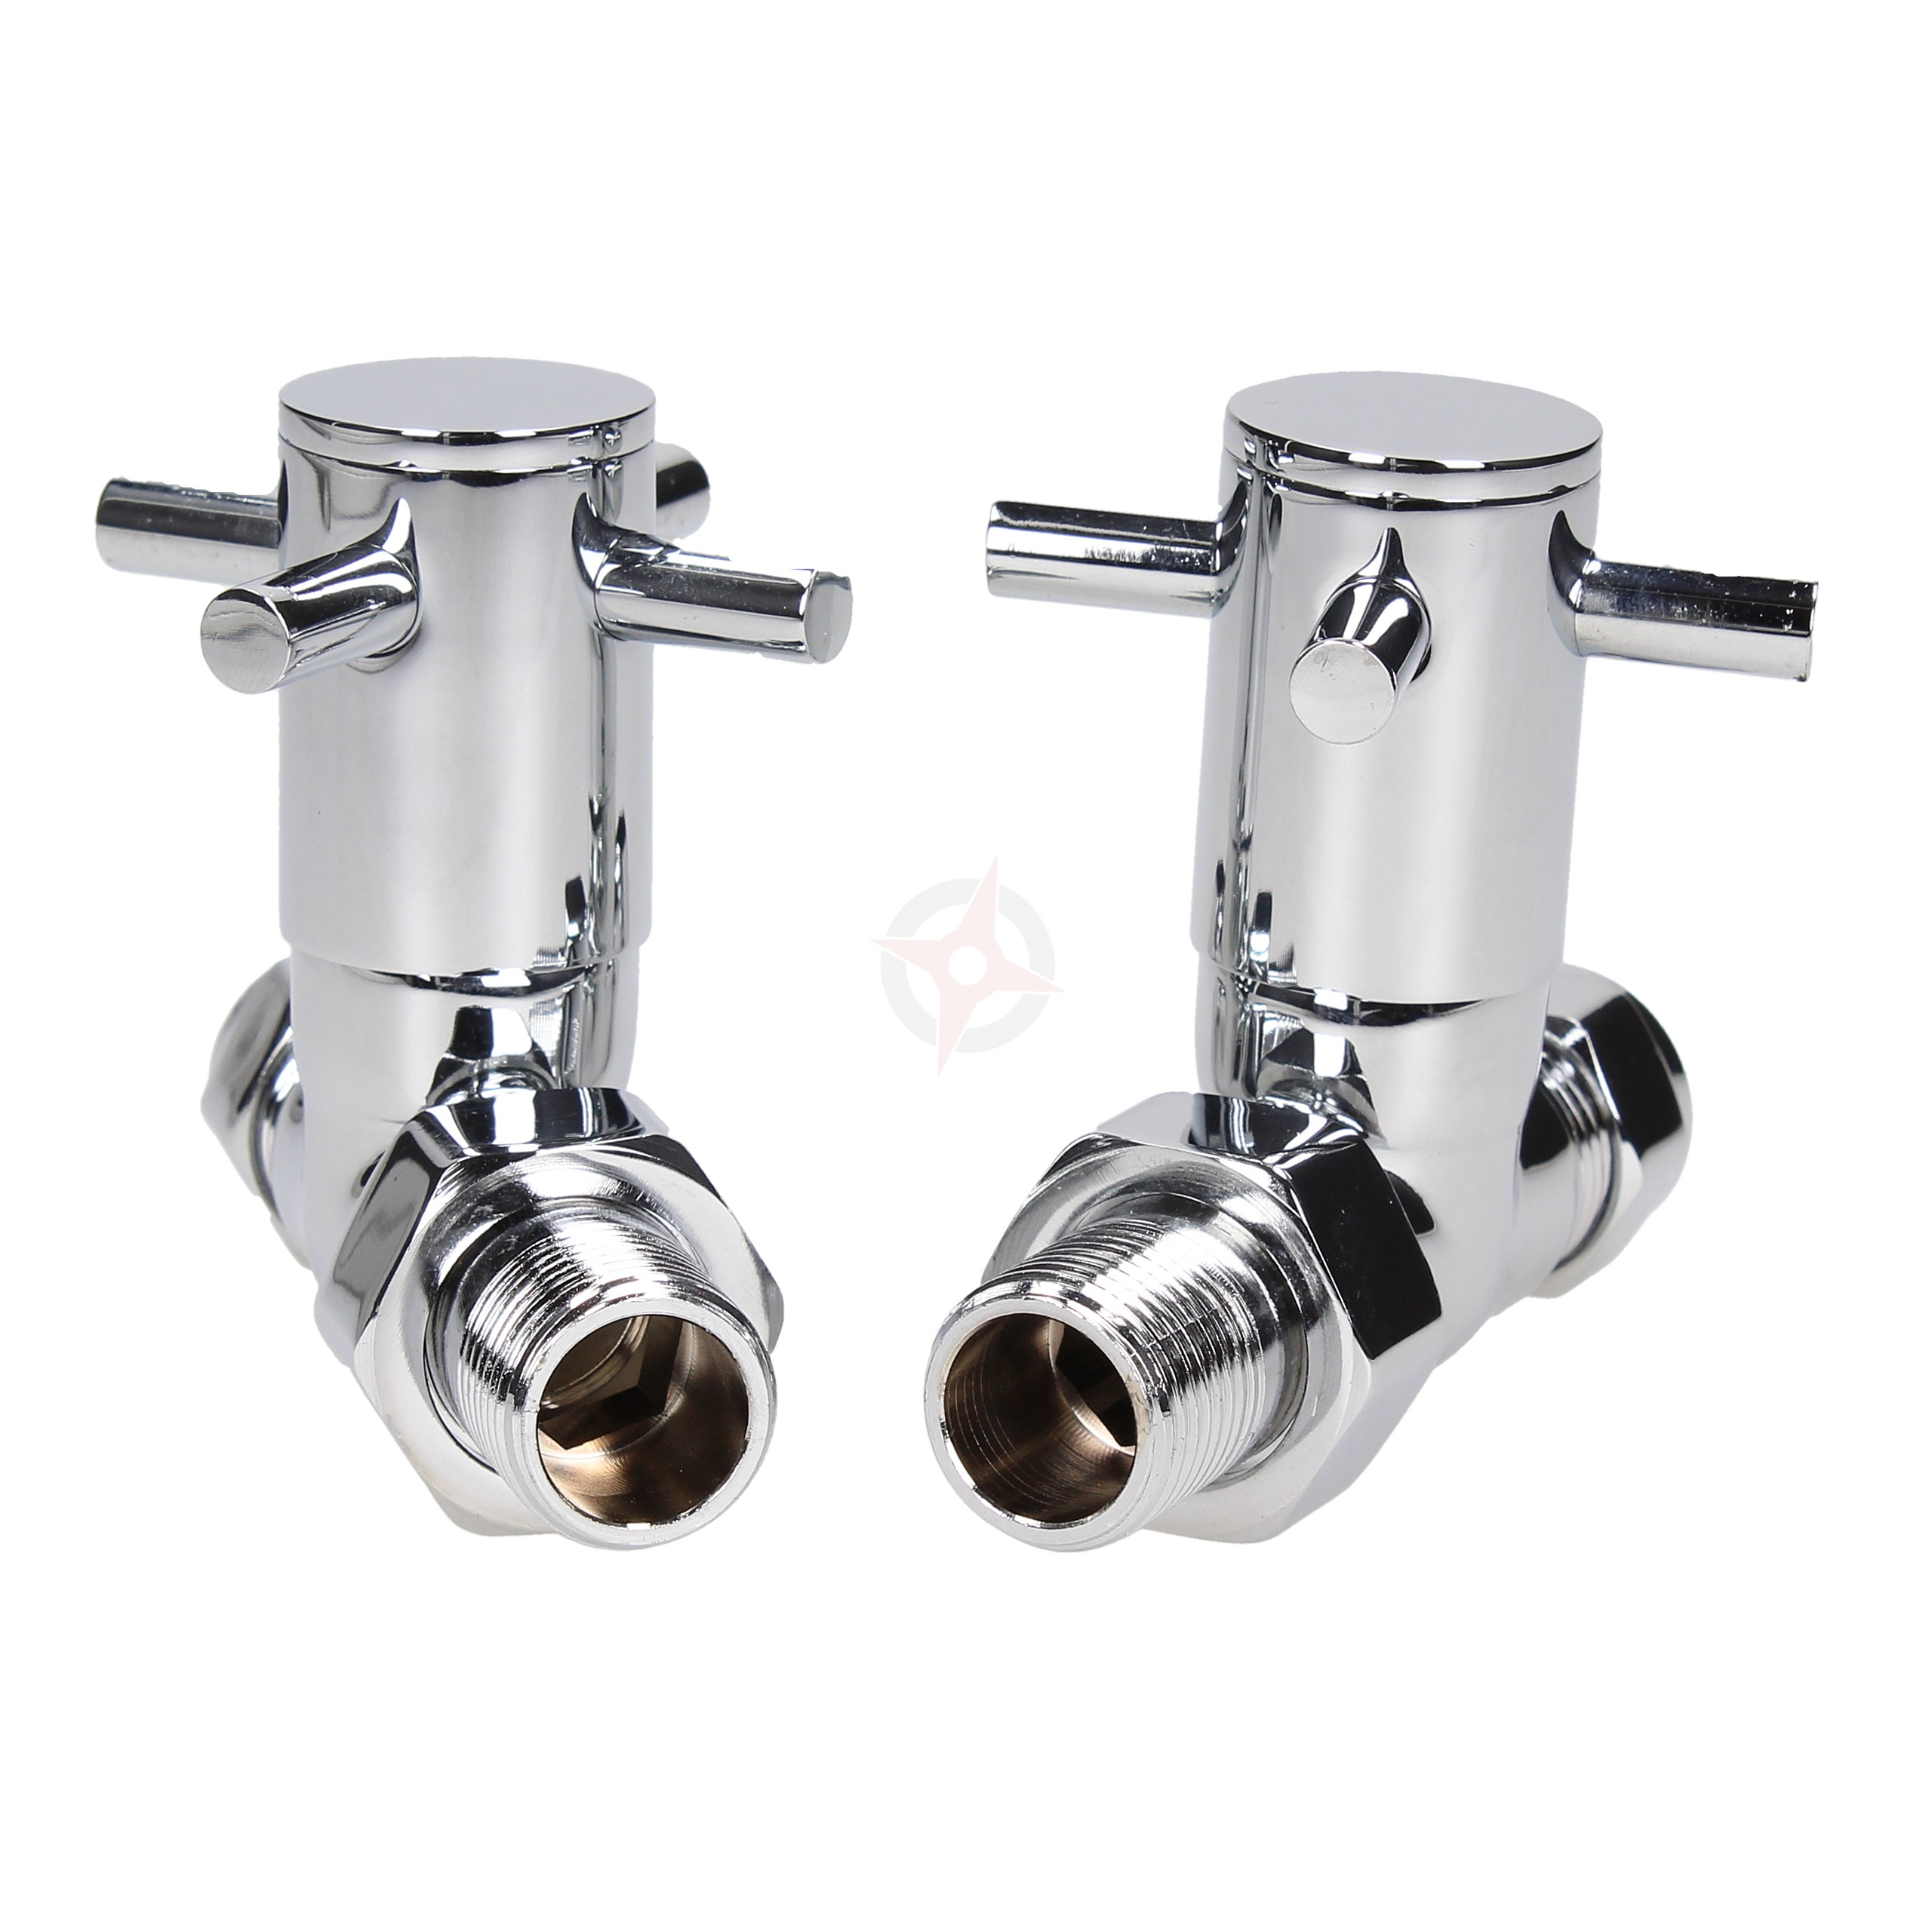 Pair of London Cross Head Straight Wheel Head Radiator Valves